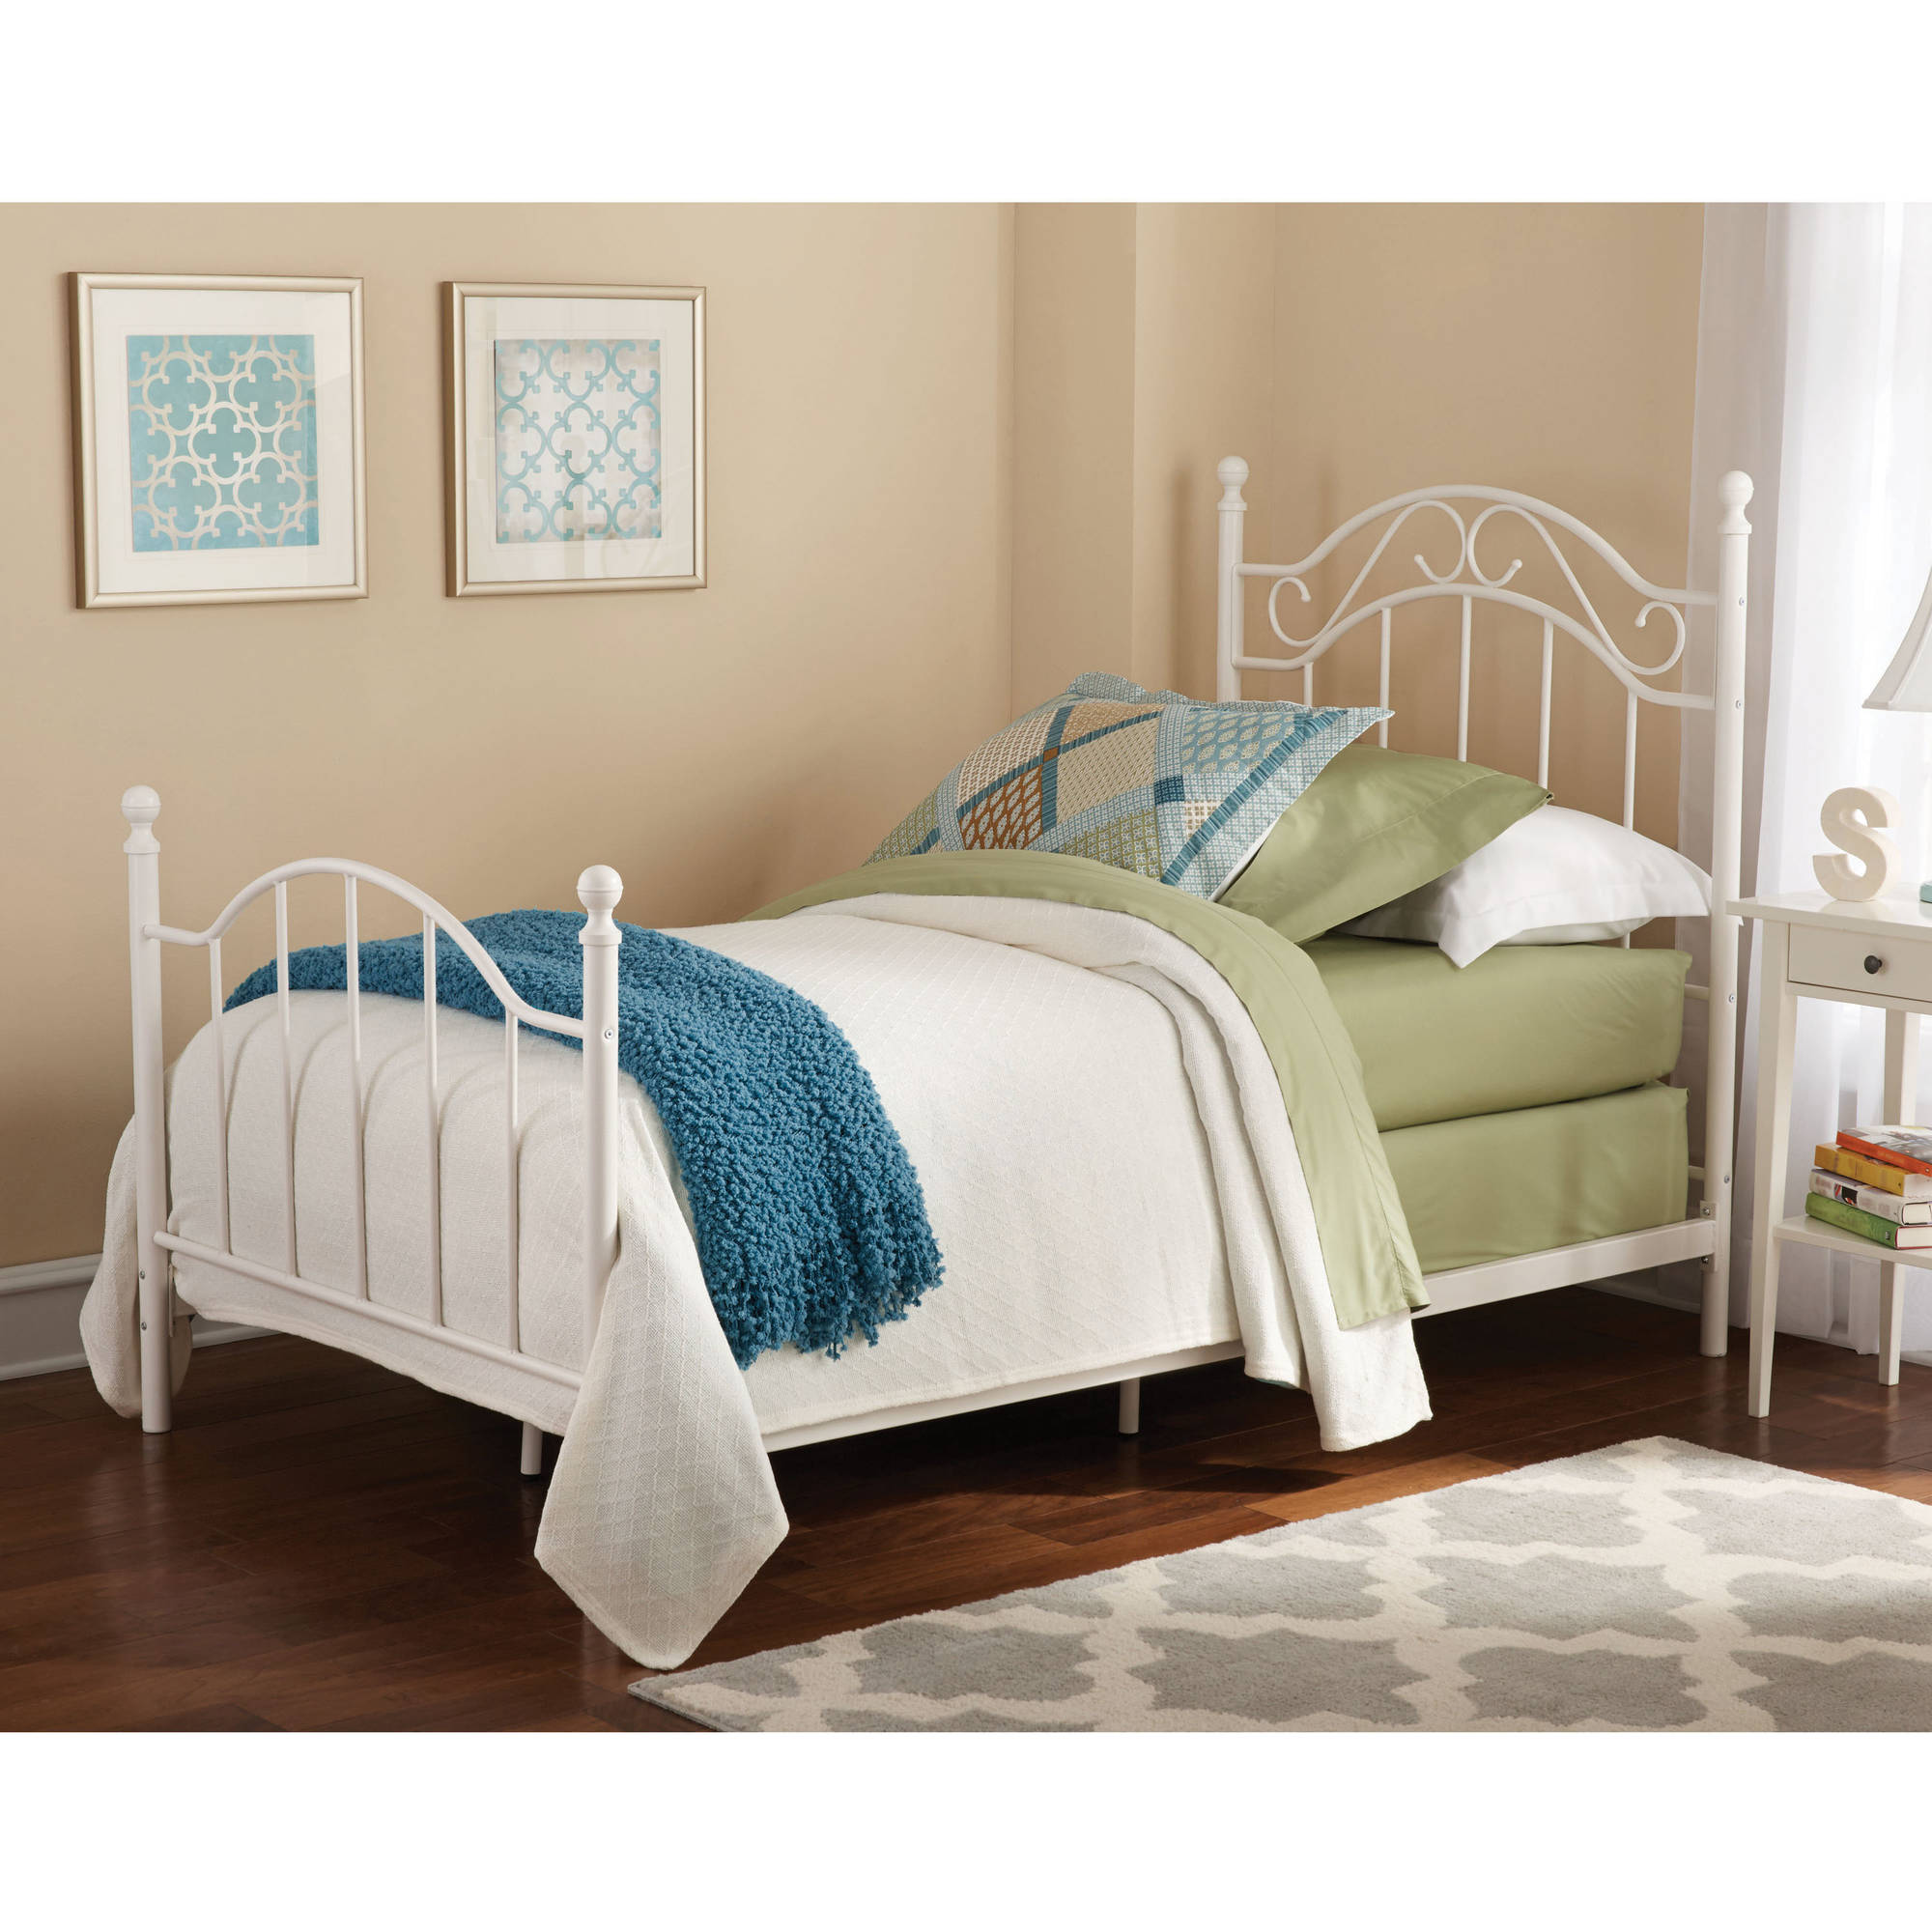 Mainstays Twin Metal Bed Walmart